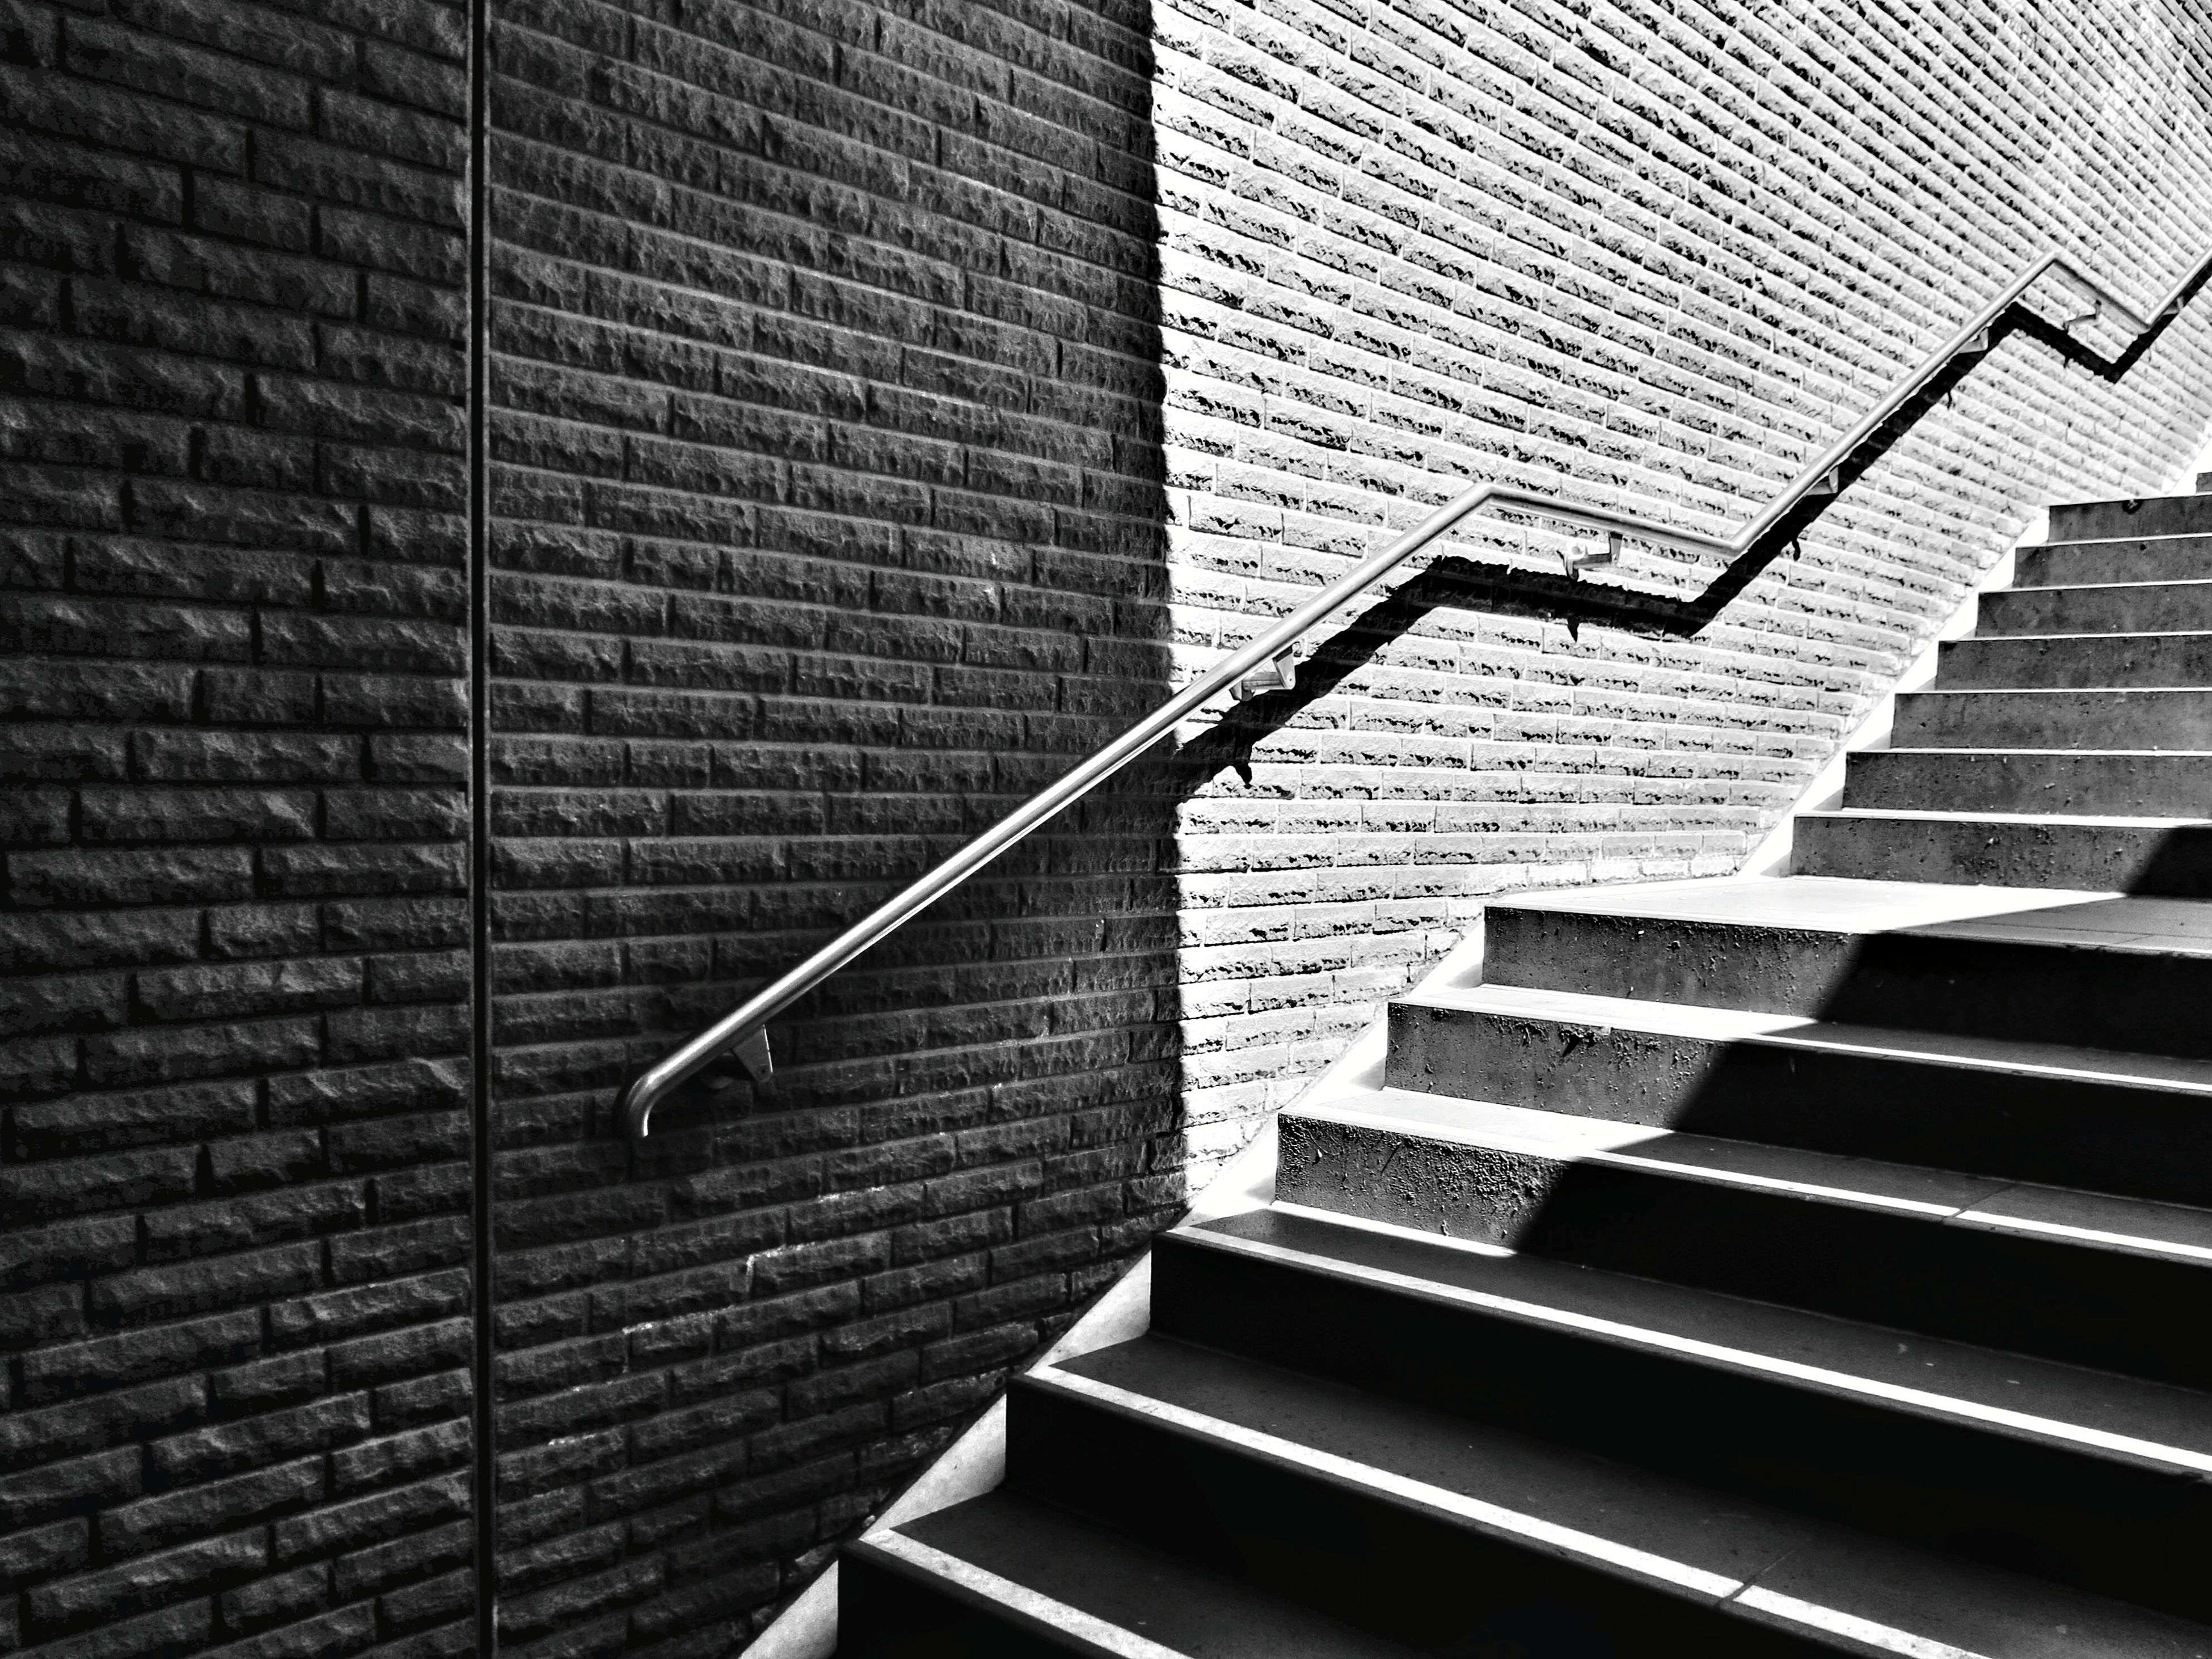 architecture, building exterior, built structure, low angle view, brick wall, building, steps and staircases, steps, pattern, staircase, city, wall - building feature, day, no people, window, outdoors, residential structure, modern, residential building, architectural feature